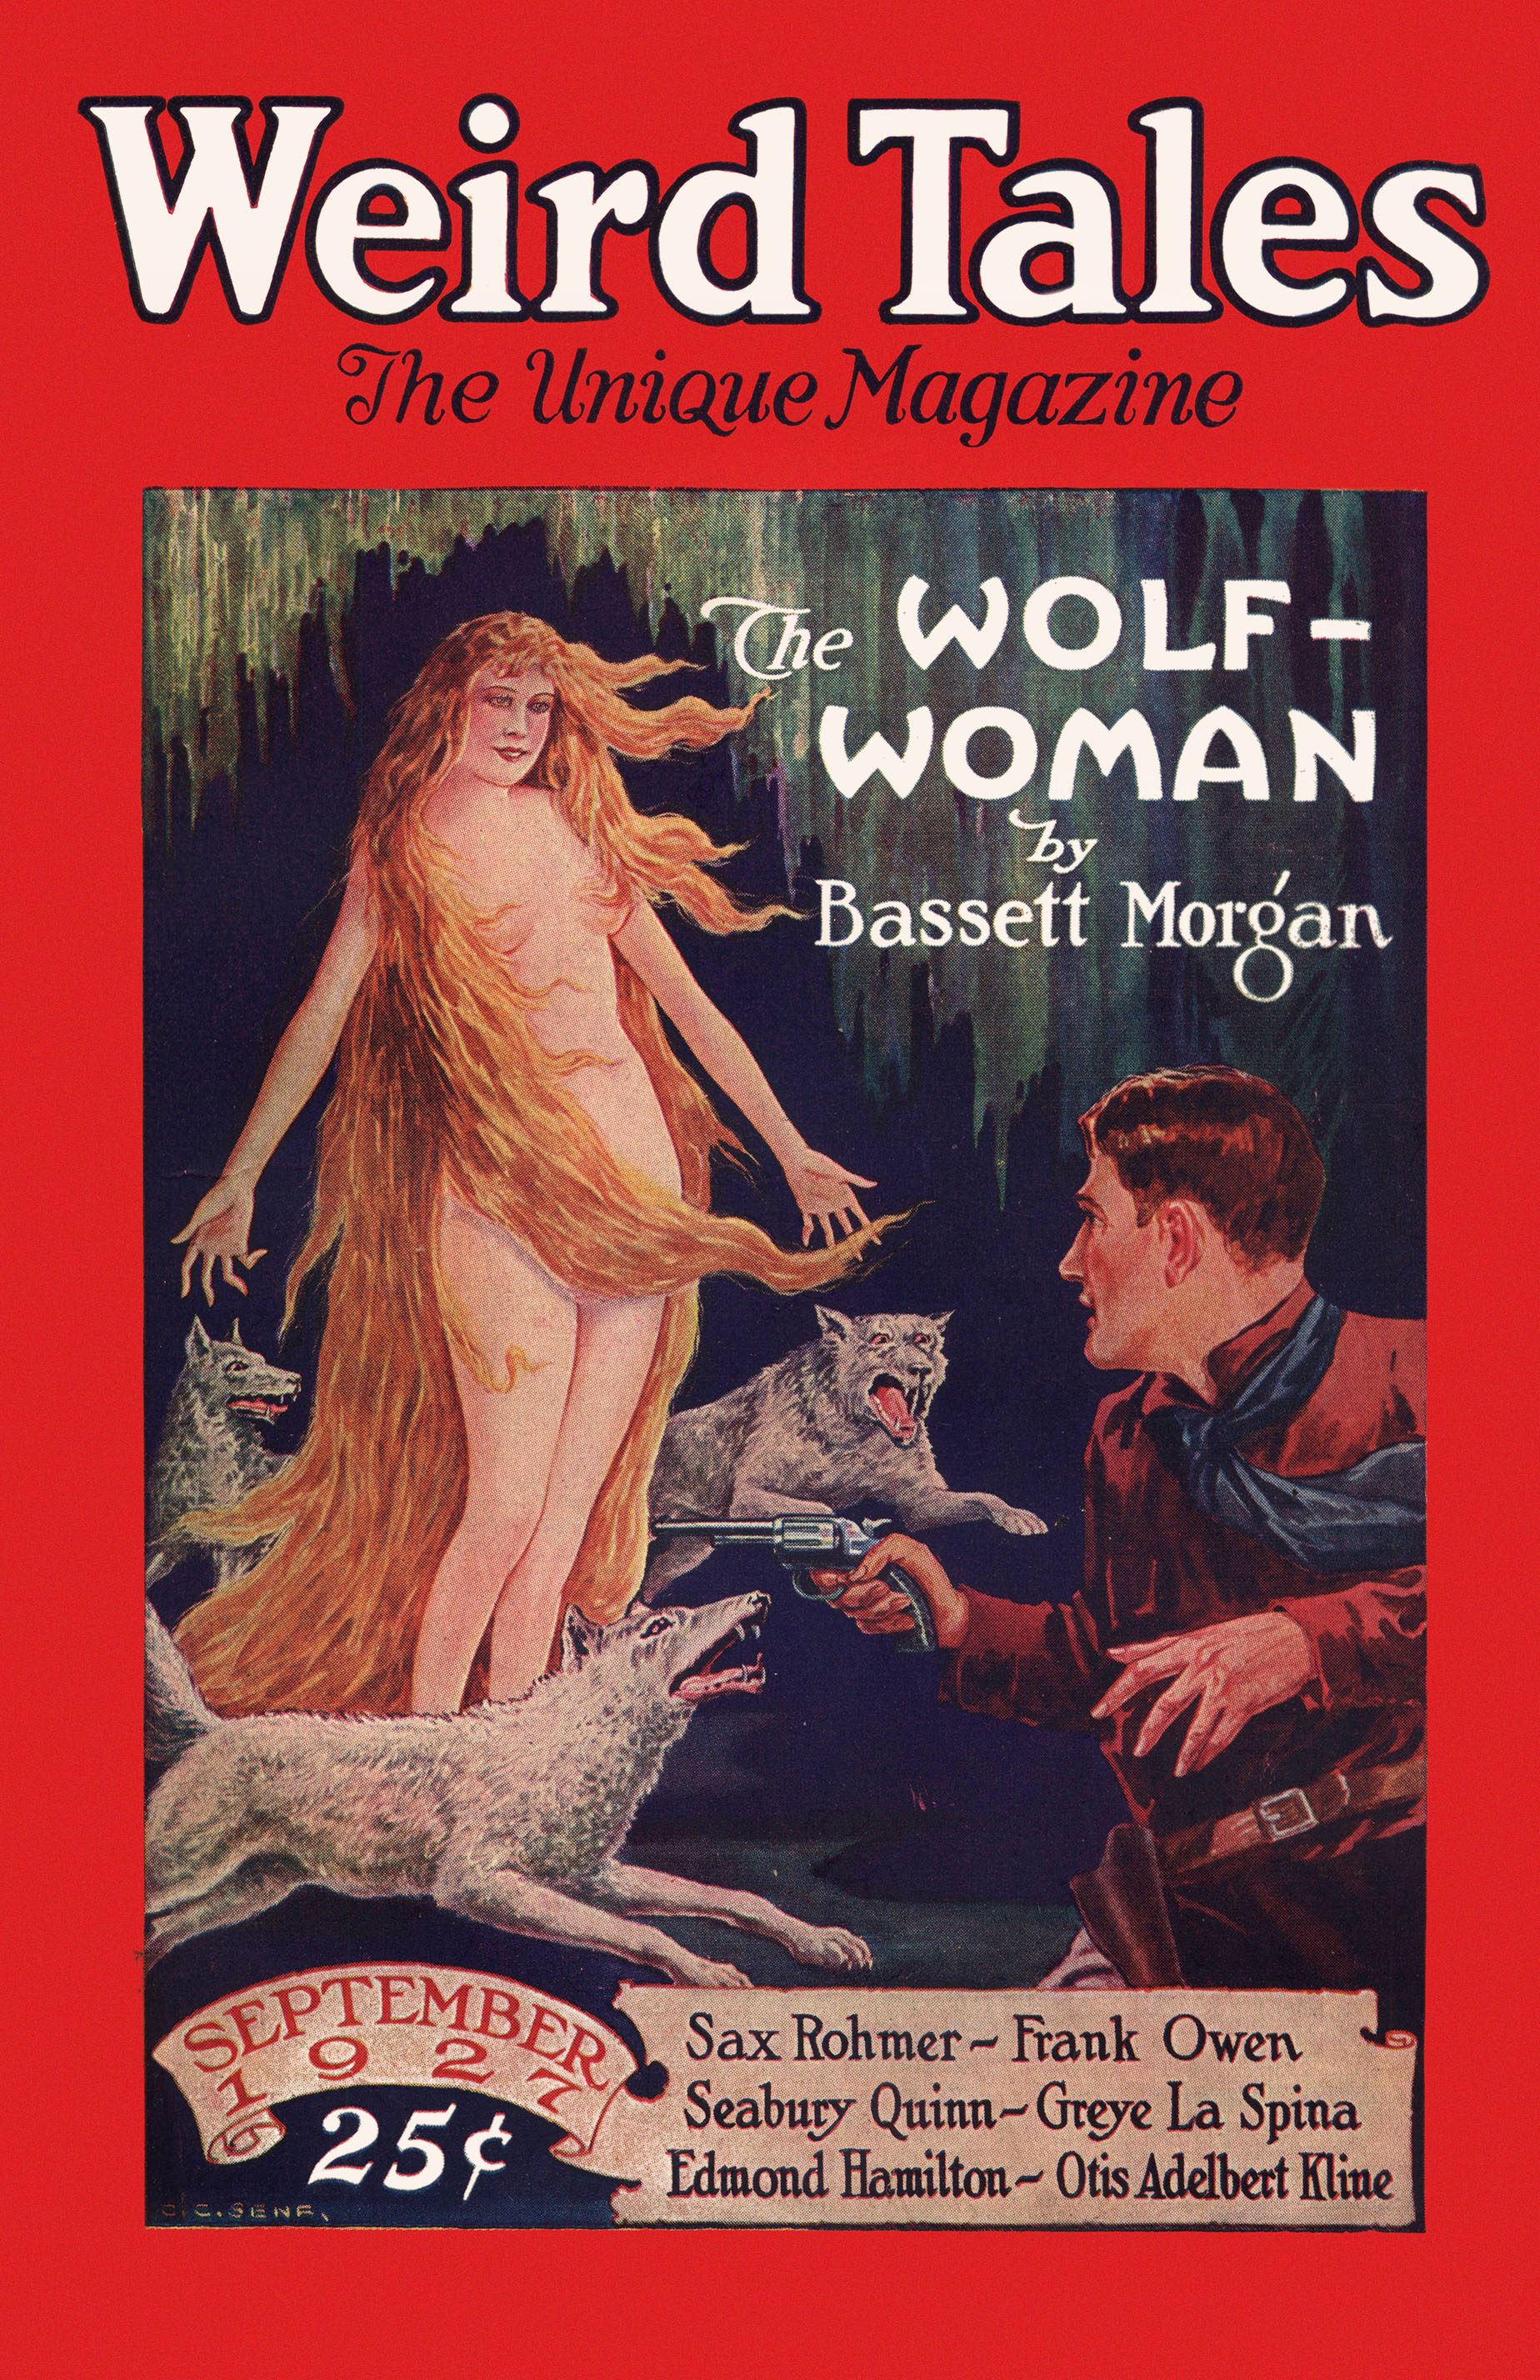 Weird Tales, September 1927